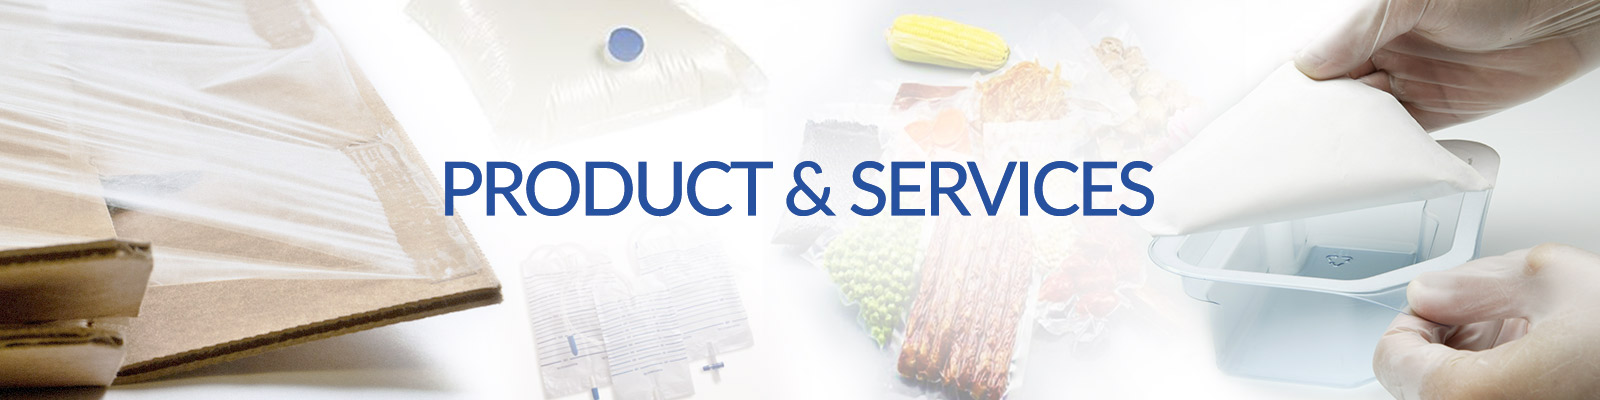 Products & Services - Top Banner